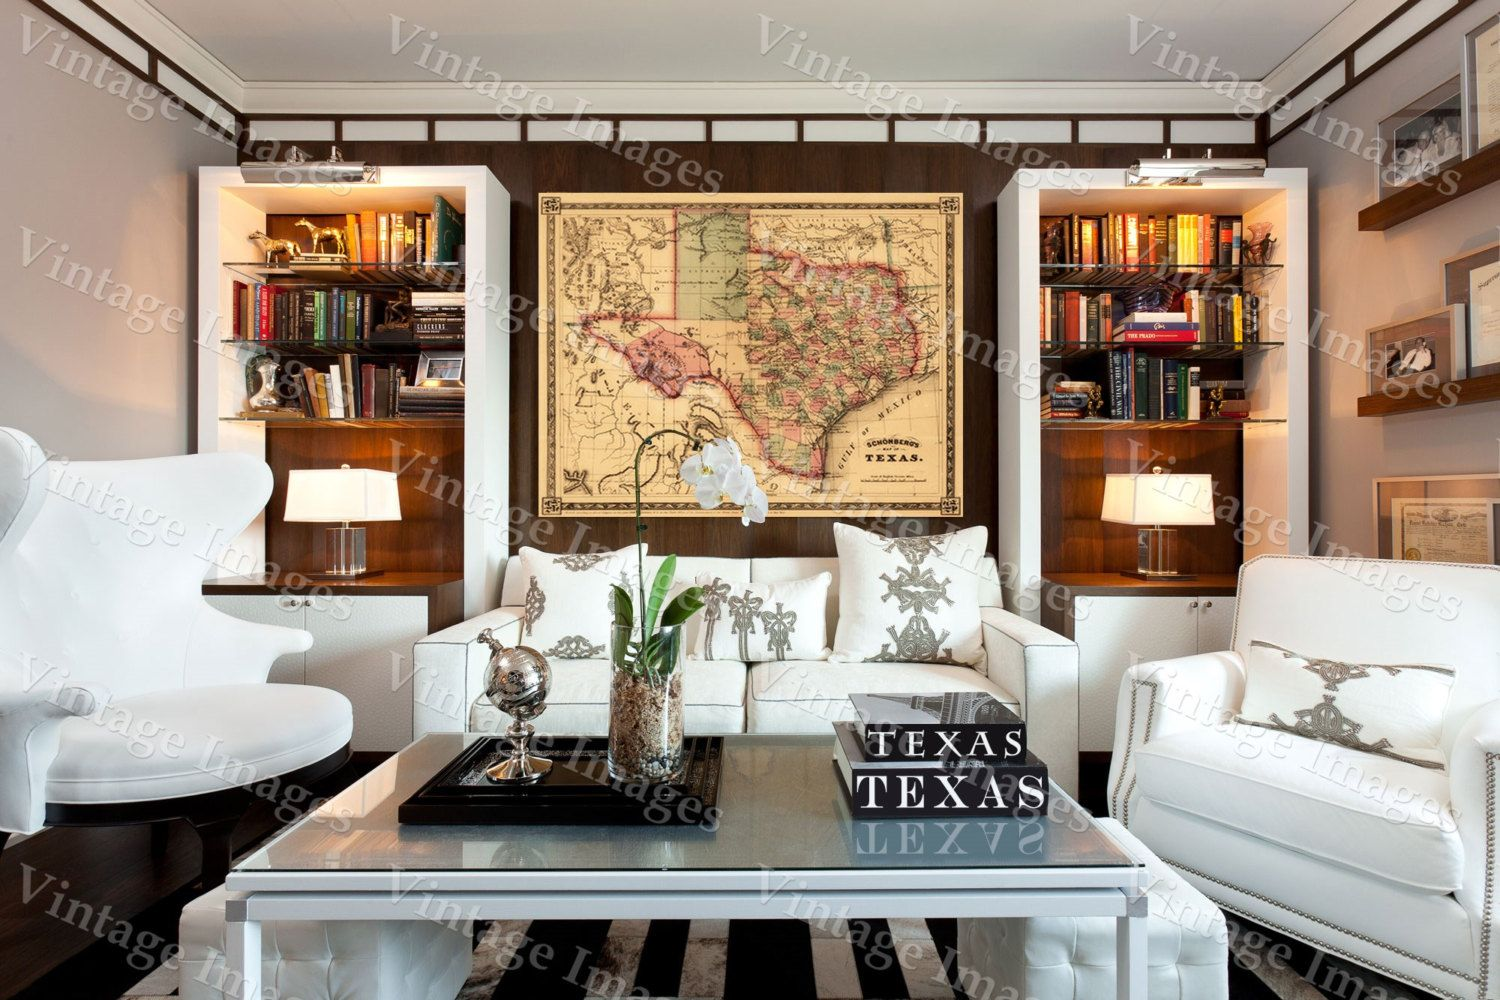 17 Best images about Restoration Hardware Style Maps on Pinterest   Wall  maps  Vintage new york and Hardware. 17 Best images about Restoration Hardware Style Maps on Pinterest